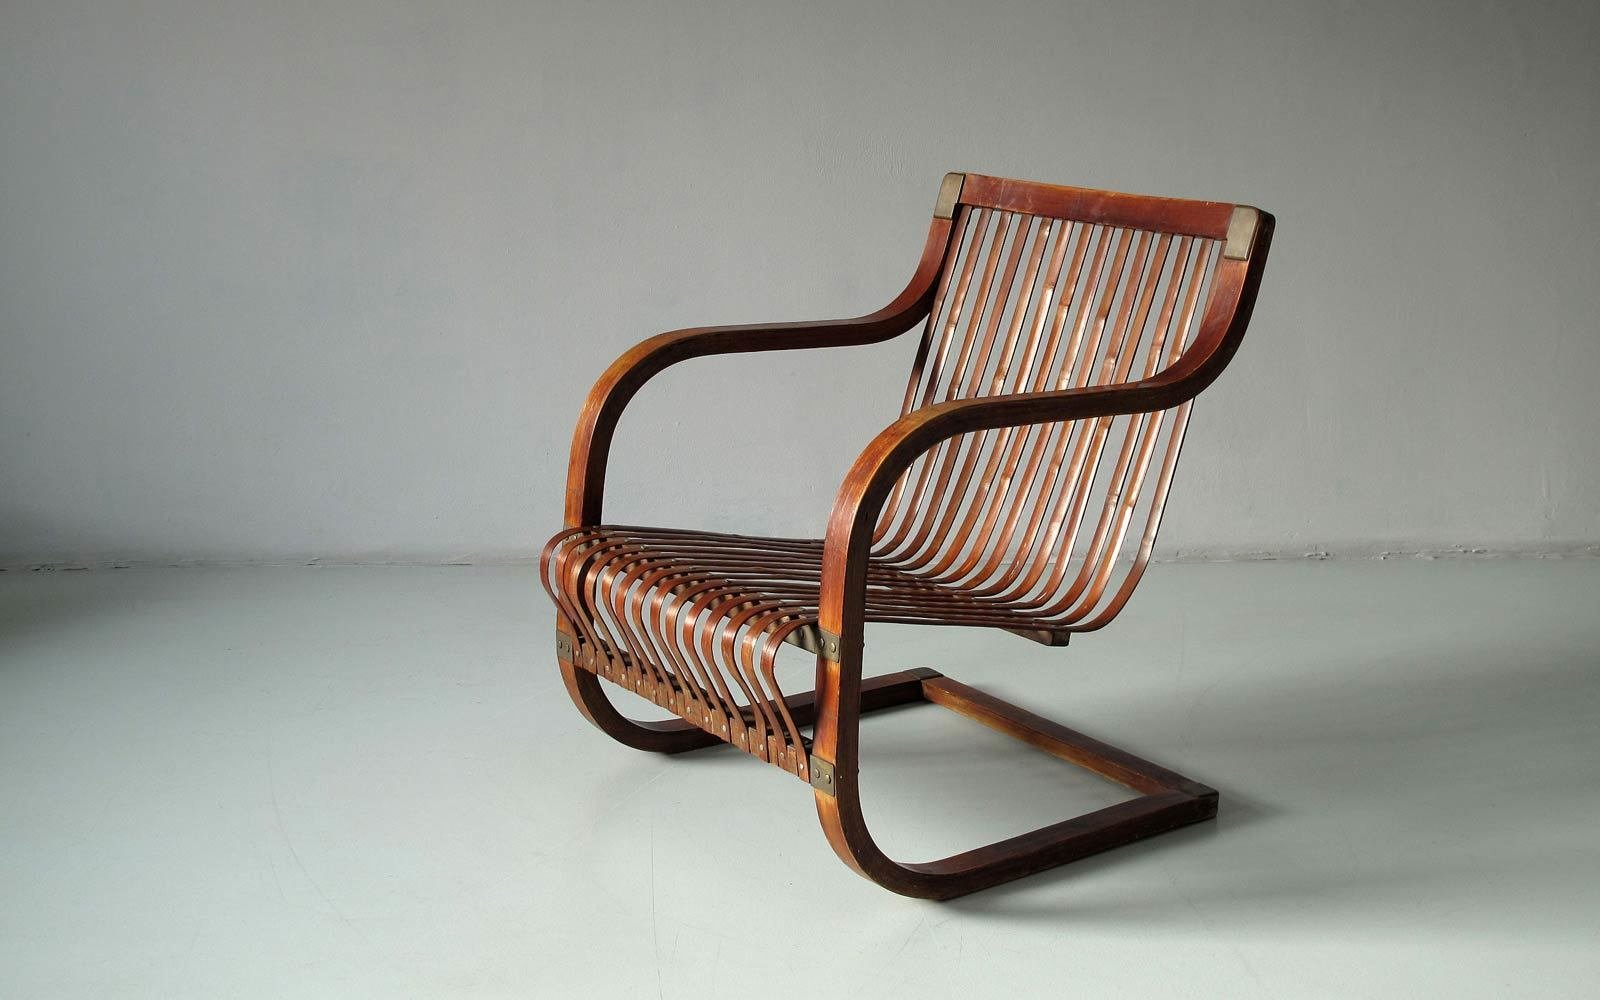 Cantilever chair for Takashimaya Department Store, Tokyo 1940s. Bamboo, oak, bronze.  Independent works of Charlotte Perriand